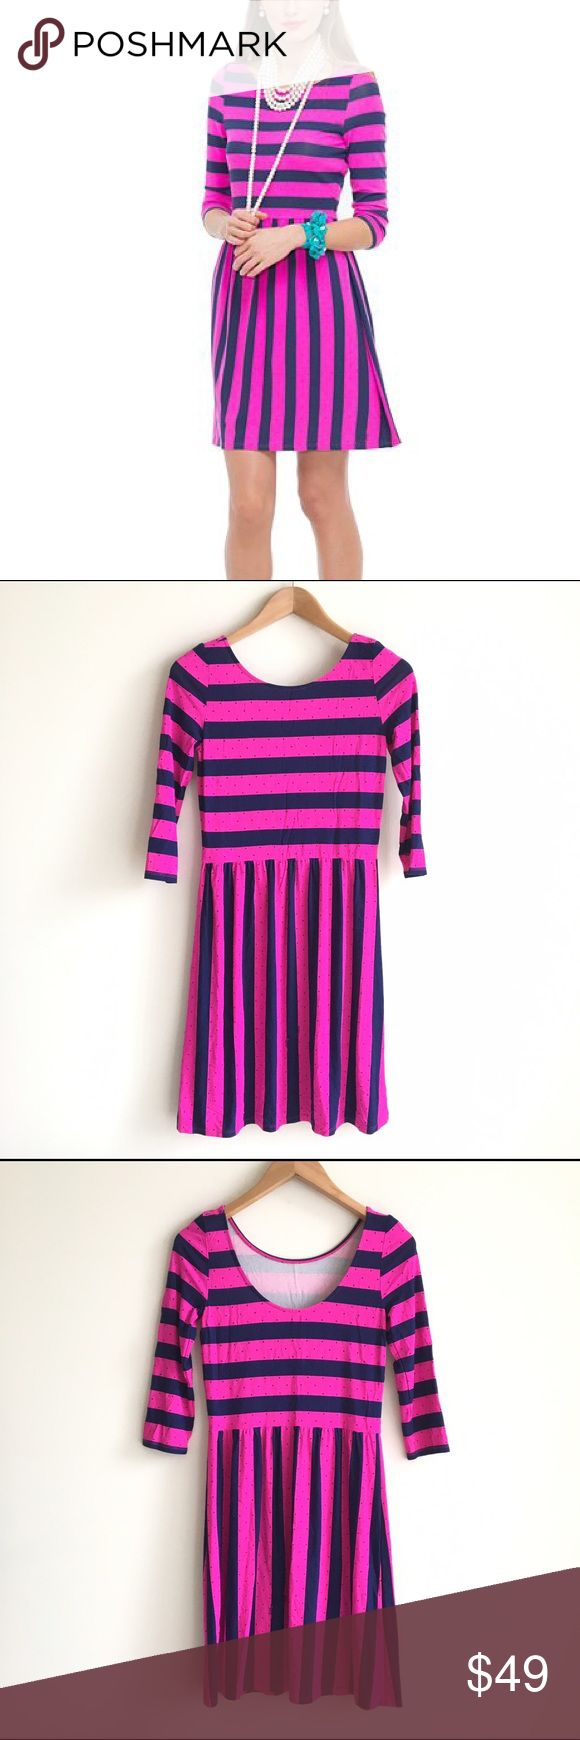 Lilly Pulitzer Pink & Navy Striped Evelyn Dress Pink and navy stripes with polka dots.  ¾ length sleeves.  Skater style dress, fitted sleeves and top, loose flared bottom.  Horizontal stripes across top, vertical stiped skirt.  EUC Lilly Pulitzer Dresses Long Sleeve